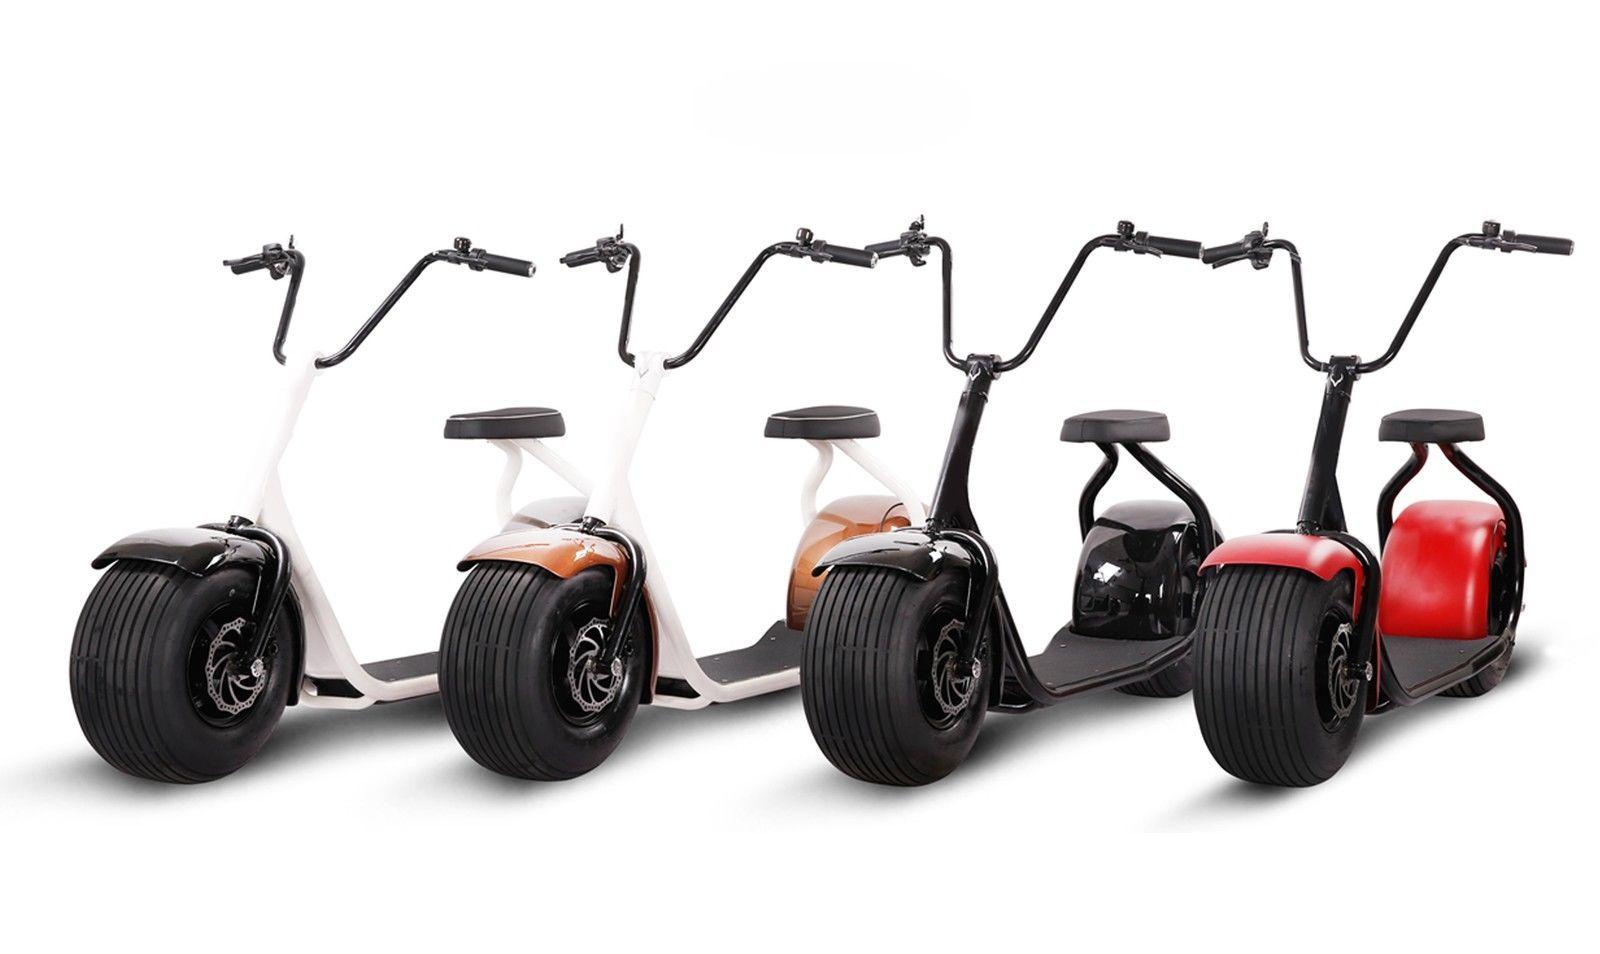 1000w 12ah adult 18x9 5 big fat tire harley electric scooter citycoco seev scooters and tired. Black Bedroom Furniture Sets. Home Design Ideas